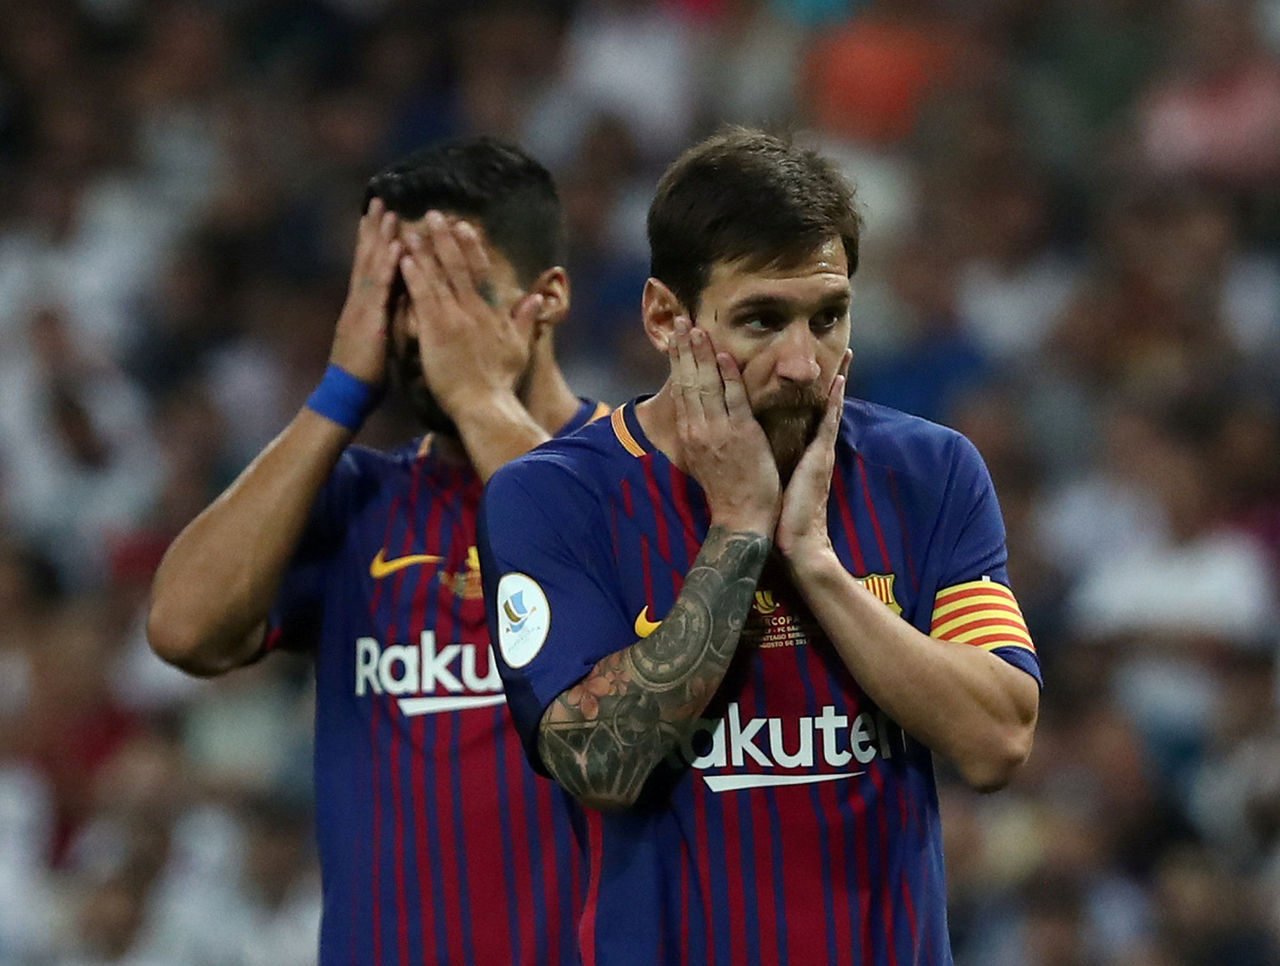 Cropped 2017 08 17t001020z 1921289794 rc1ccfe56440 rtrmadp 3 soccer spain rea fcb supercup